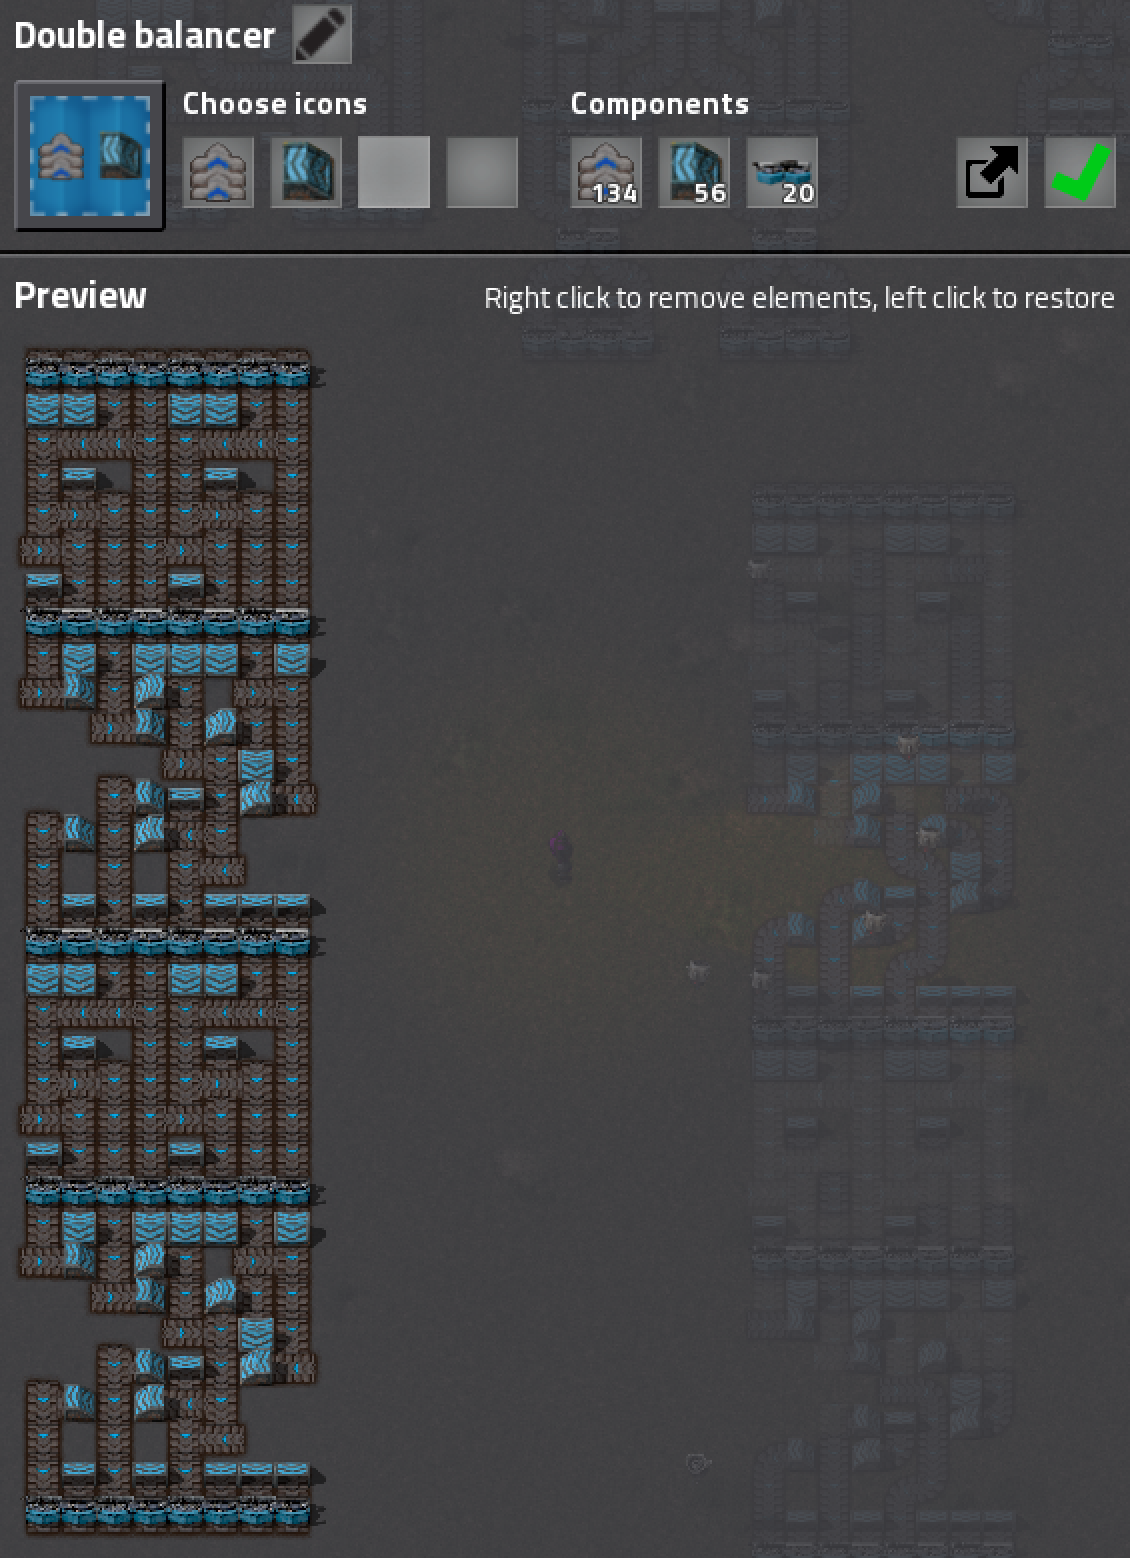 My own 8-lane doubled balancer